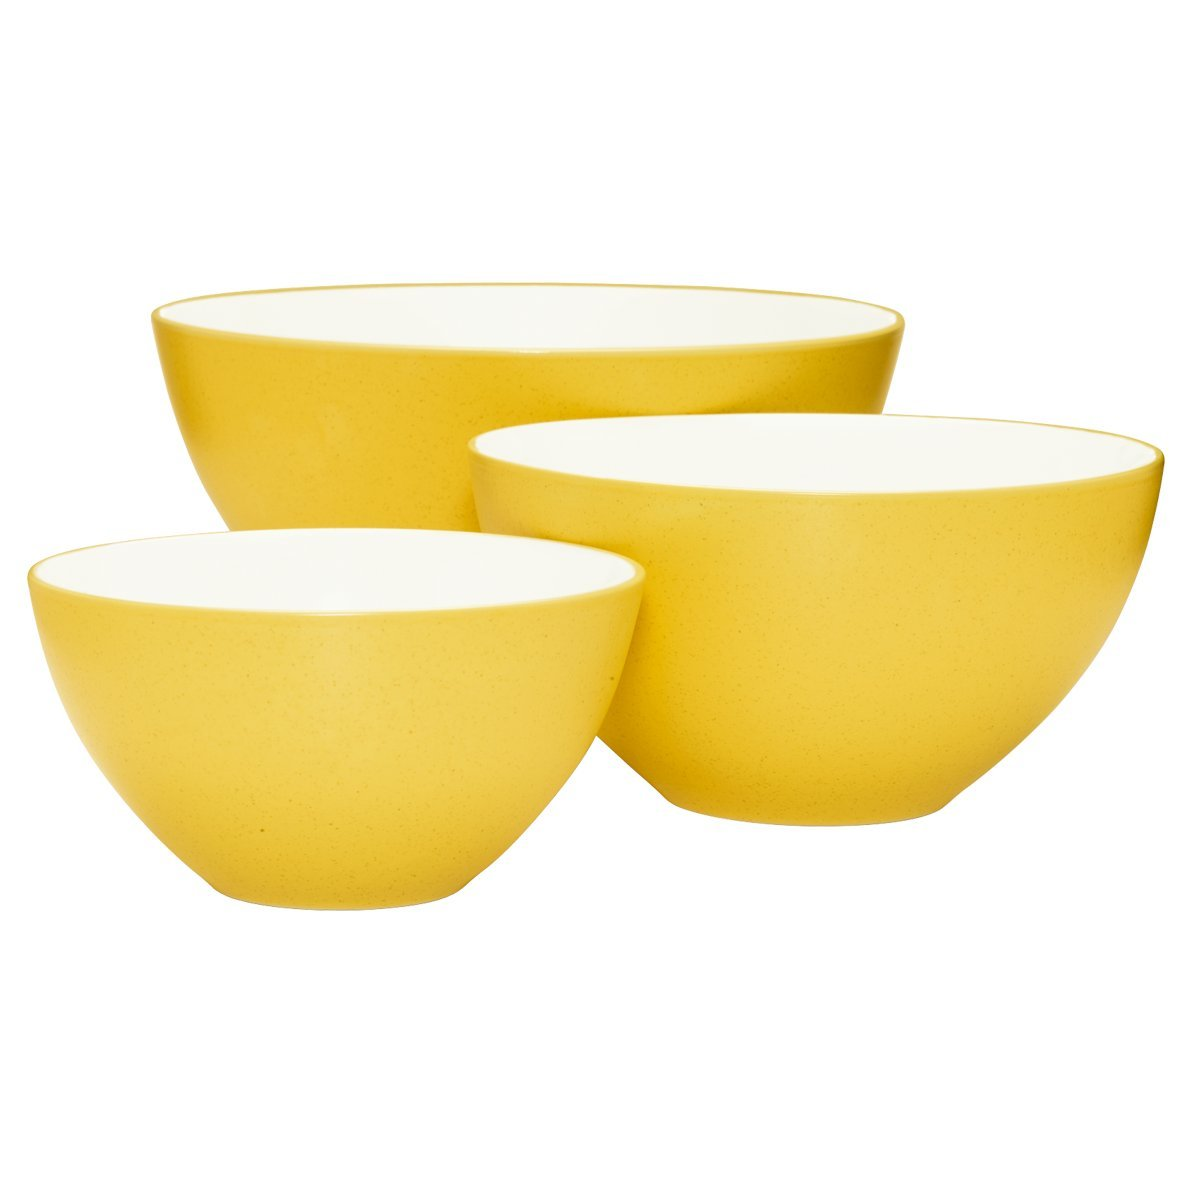 Noritake Colorwave Mustard Bowl Set, 3-piece